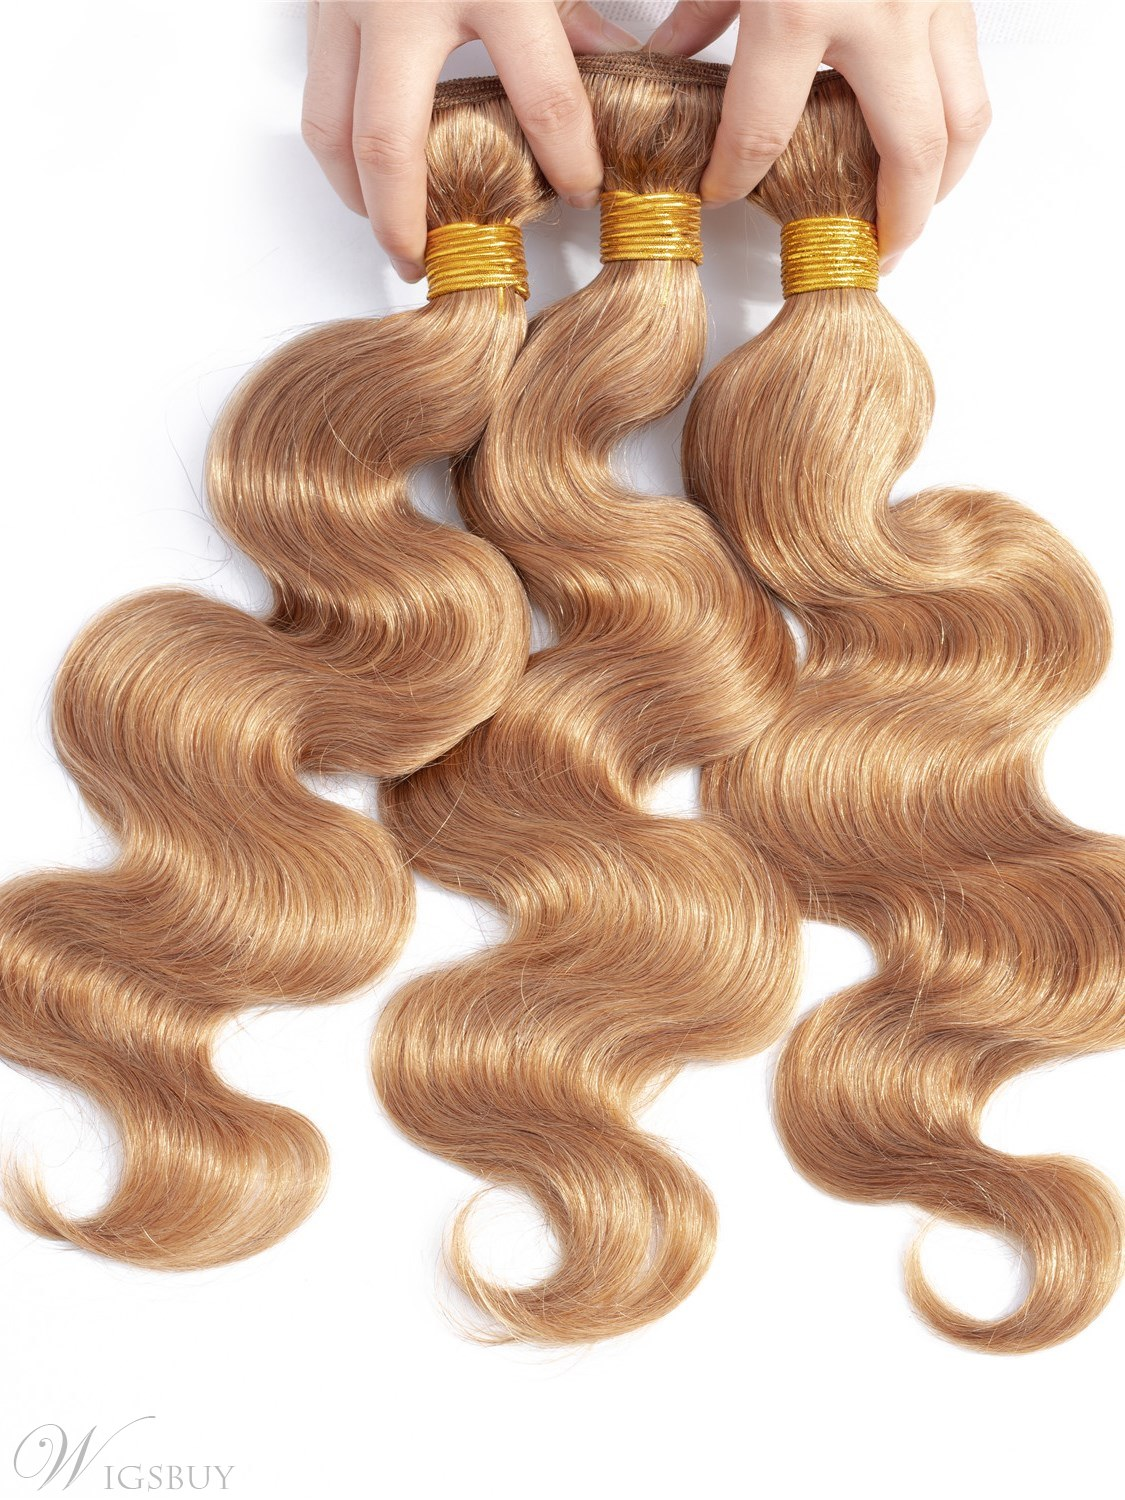 Wigsbuy Body Wave Human Hair WeaveHoney Blonde 4 Bundle Deals